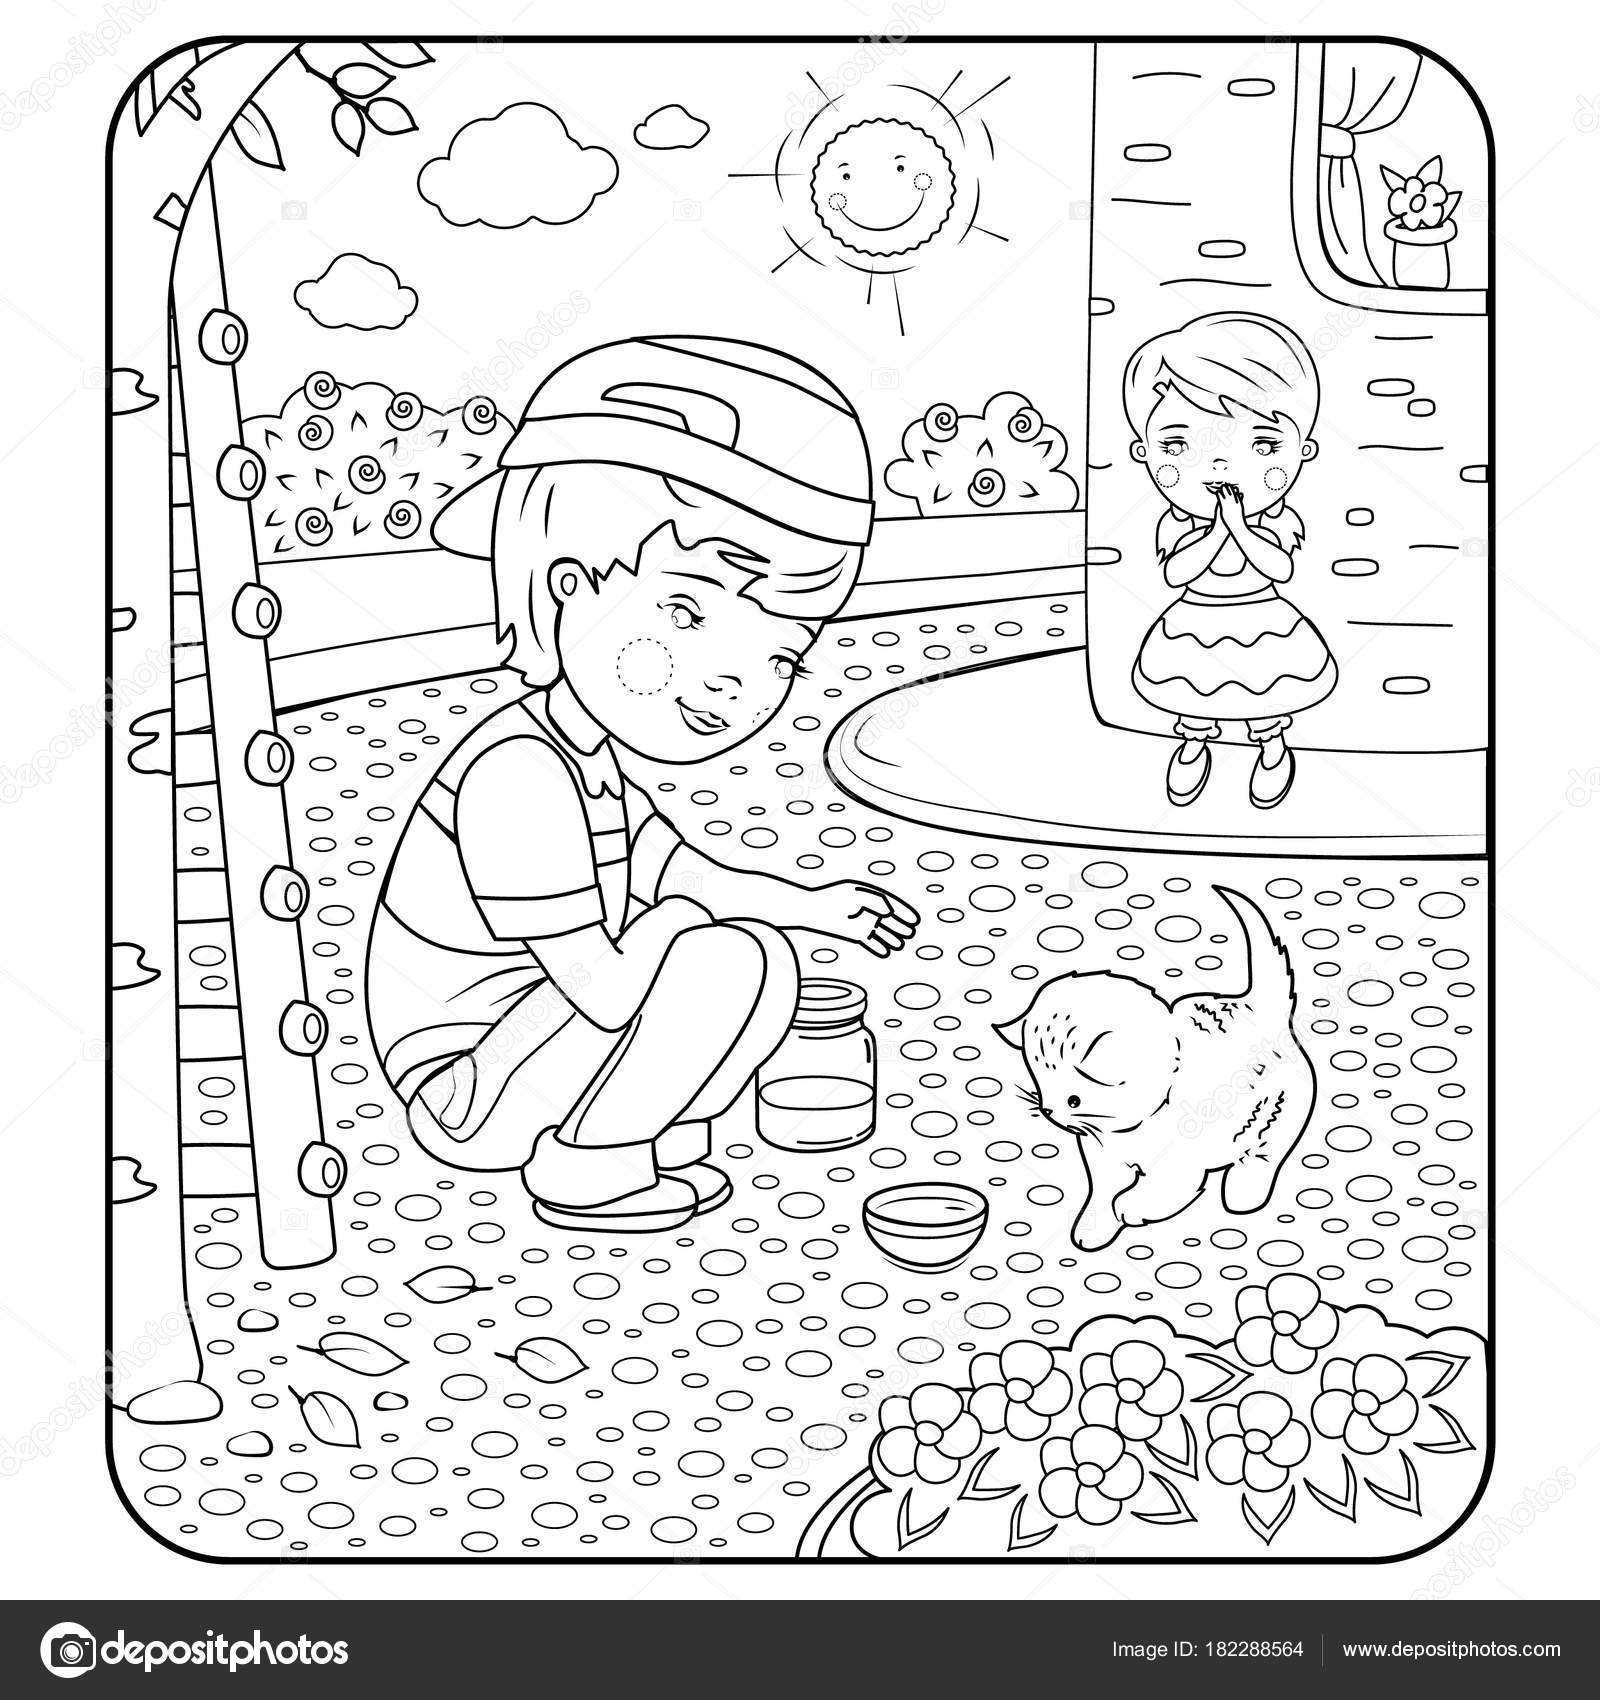 Kindness Boyillustration Coloring Pages Book First Boy Saved